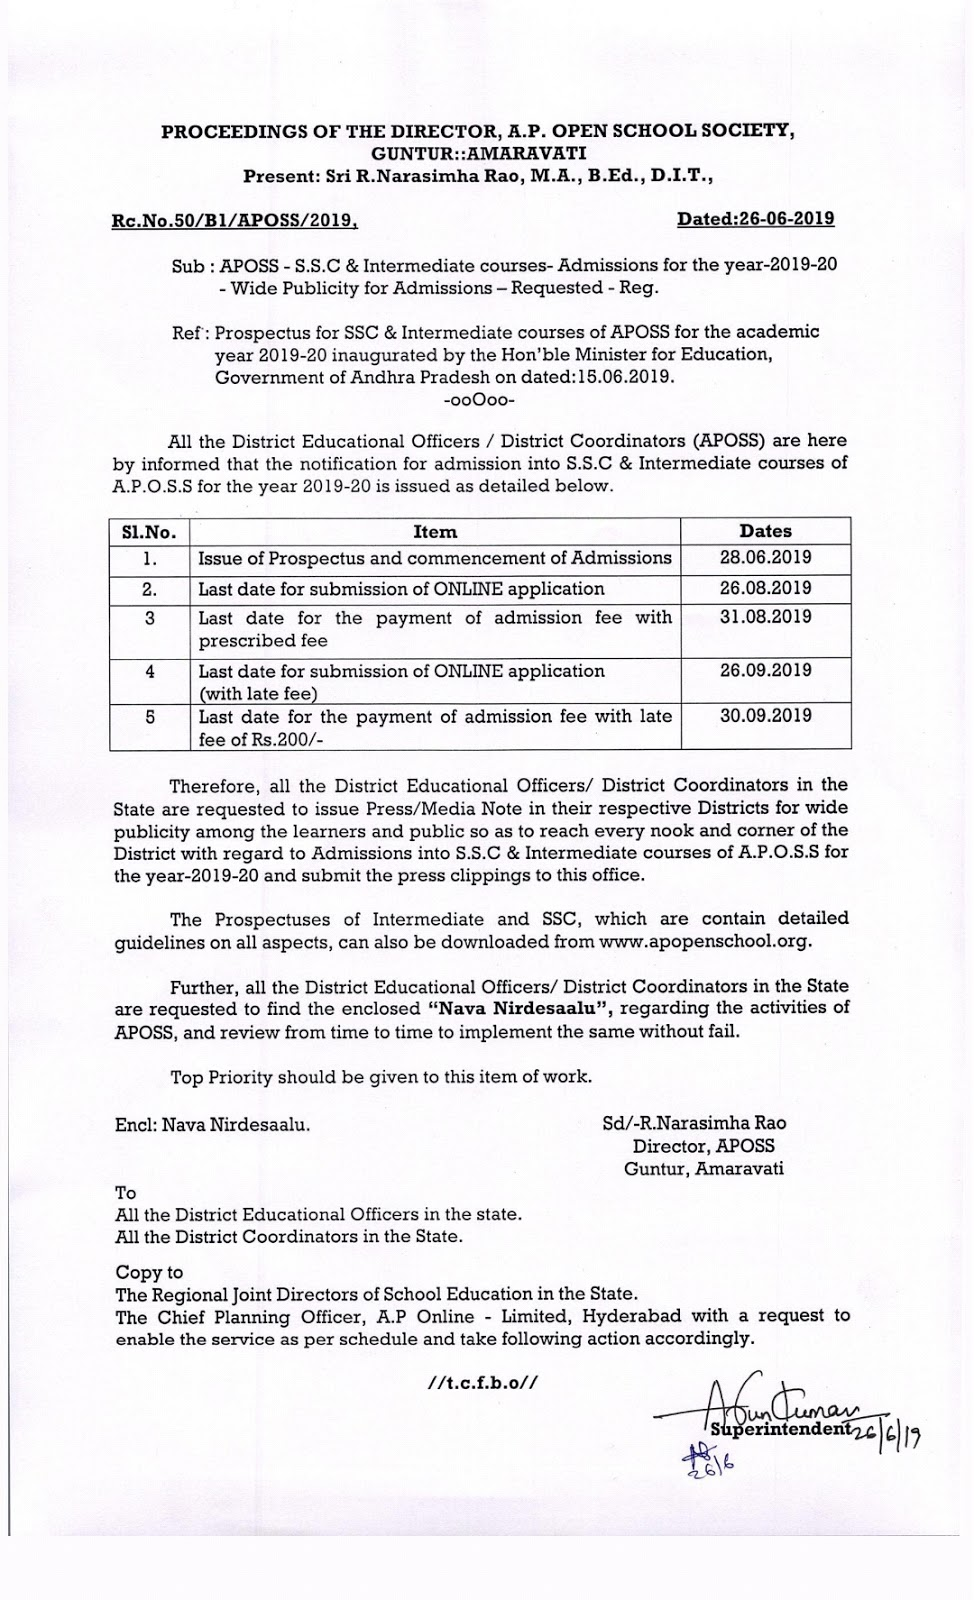 APOSS SSC Admission 2019-20 Open 10th Online Application @ www